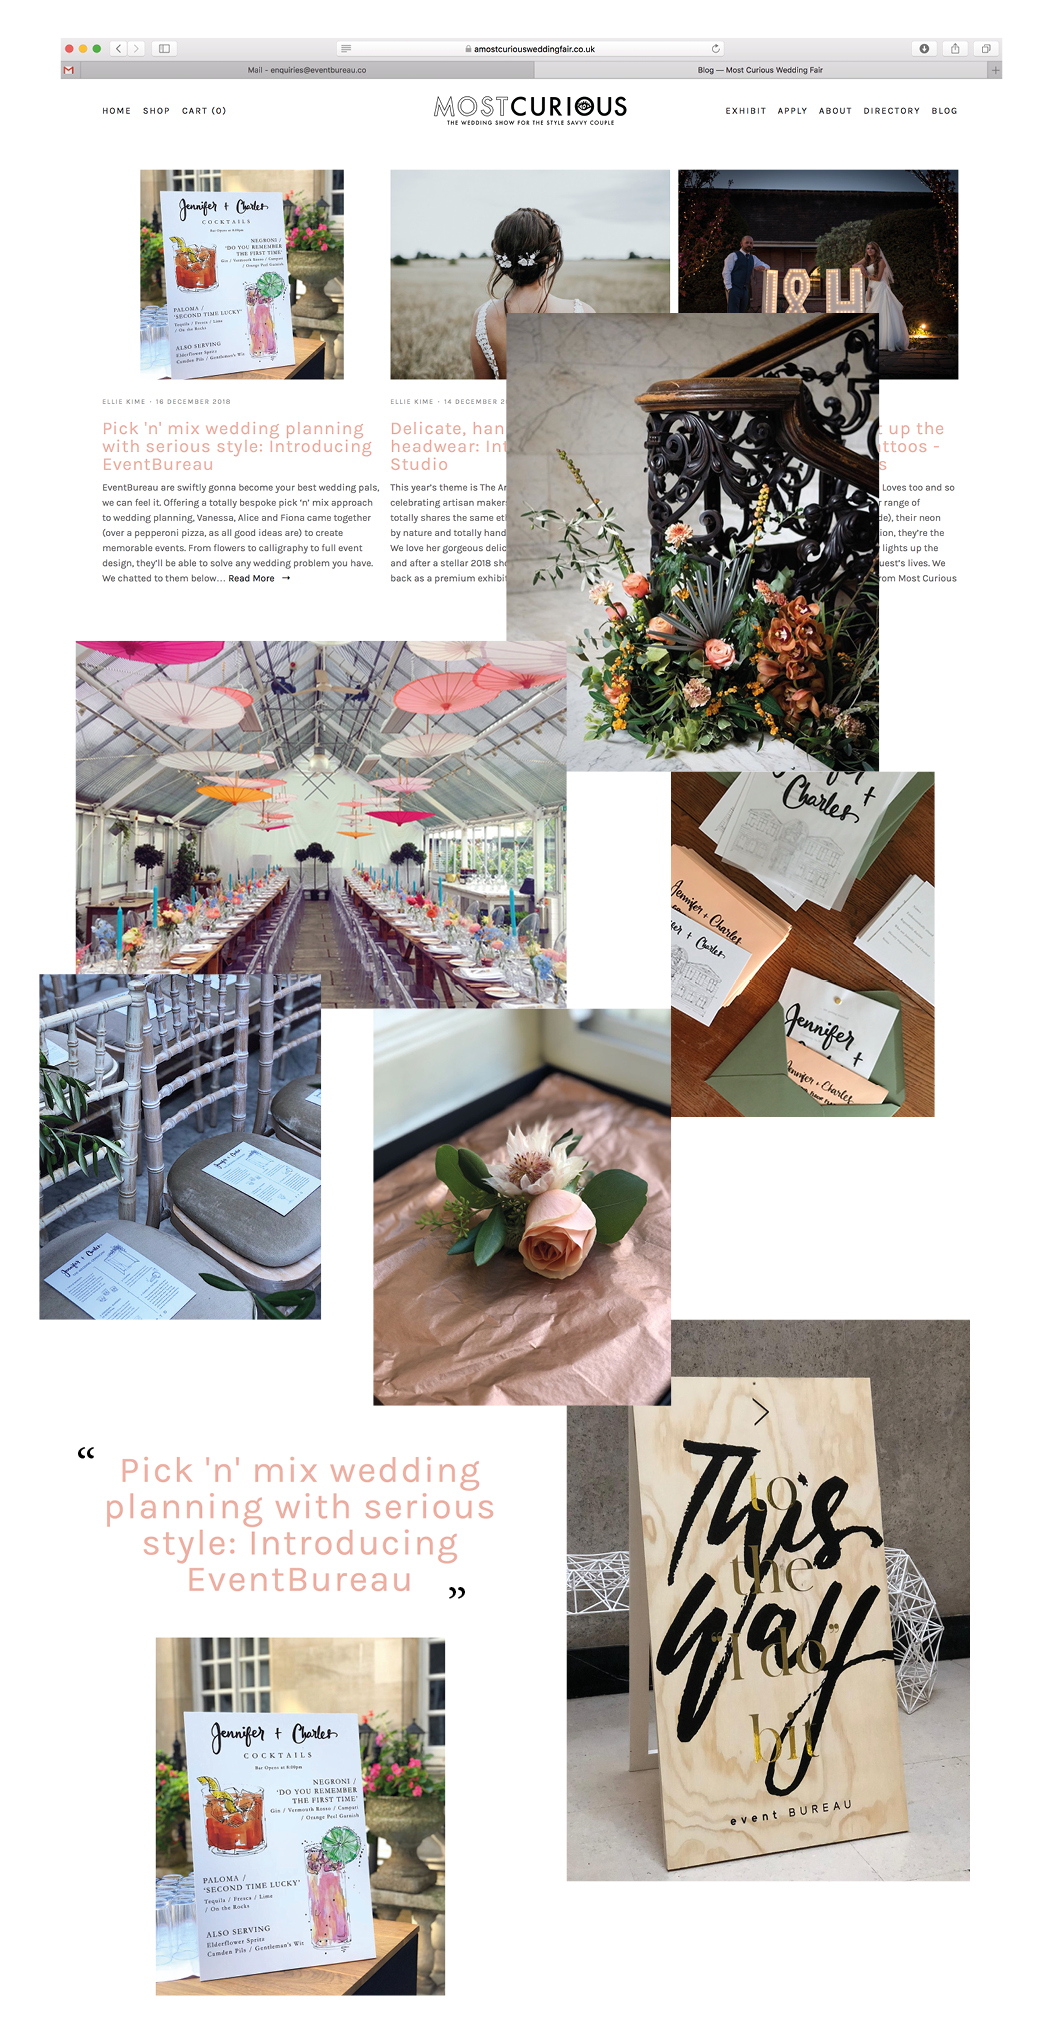 Most Curious Wedding Fair! - We spoke to Ellie from Most Curious and answered some questions. Here are some of our answers or take a look at the link below for the full article.The coolest/best moment of your career so far…Alice: My coolest/funniest moment would have to be me stood at Green Park station handing out free flower bouquets to very confused looking members of the public. They didn't understand why they were being given something so beautiful – for free.We absolutely hate to waste flowers and when we can, we will try and re-gift them. We've worked with a great charity called Floral Angels who are a London based charity who recycle donated flowers (from events; florists and retailers) and restyle them into beautifully re-arranged bouquets that are then gifted to members of the community who could benefit from a random act of kindness.Who or what inspires you?Fiona: We have all come from Design based backgrounds, so we are very much in the practice of being constantly on the look out for inspiration everywhere. Visiting galleries and exhibitions is a must for us. No matter how busy we get, there has always got to be time for a bit of culture. We are lucky enough to be London based as there is inspiration everywhere. More specifically – we get the most inspiration from meeting with our clients. We are then much more confident that we are designing to their tastes and not what is the done thing at any particular time.What's the most curious thing about your business?Vanessa: The idea of EventBureau was born over a terrible Pepperoni Pizza! We were on a girl's weekend in Amsterdam and had spent all of our money on tickets to the ballet, so we went for a quick Pizza beforehand. We were so bored with the food (and the comedy service) that we decided there and then that we would start our own business. I think I have the napkin in which we wrote it all down somewhere at home.https://www.amostcuriousweddingfair.co.uk/journal/pick-n-mix-event-design-eventbureau